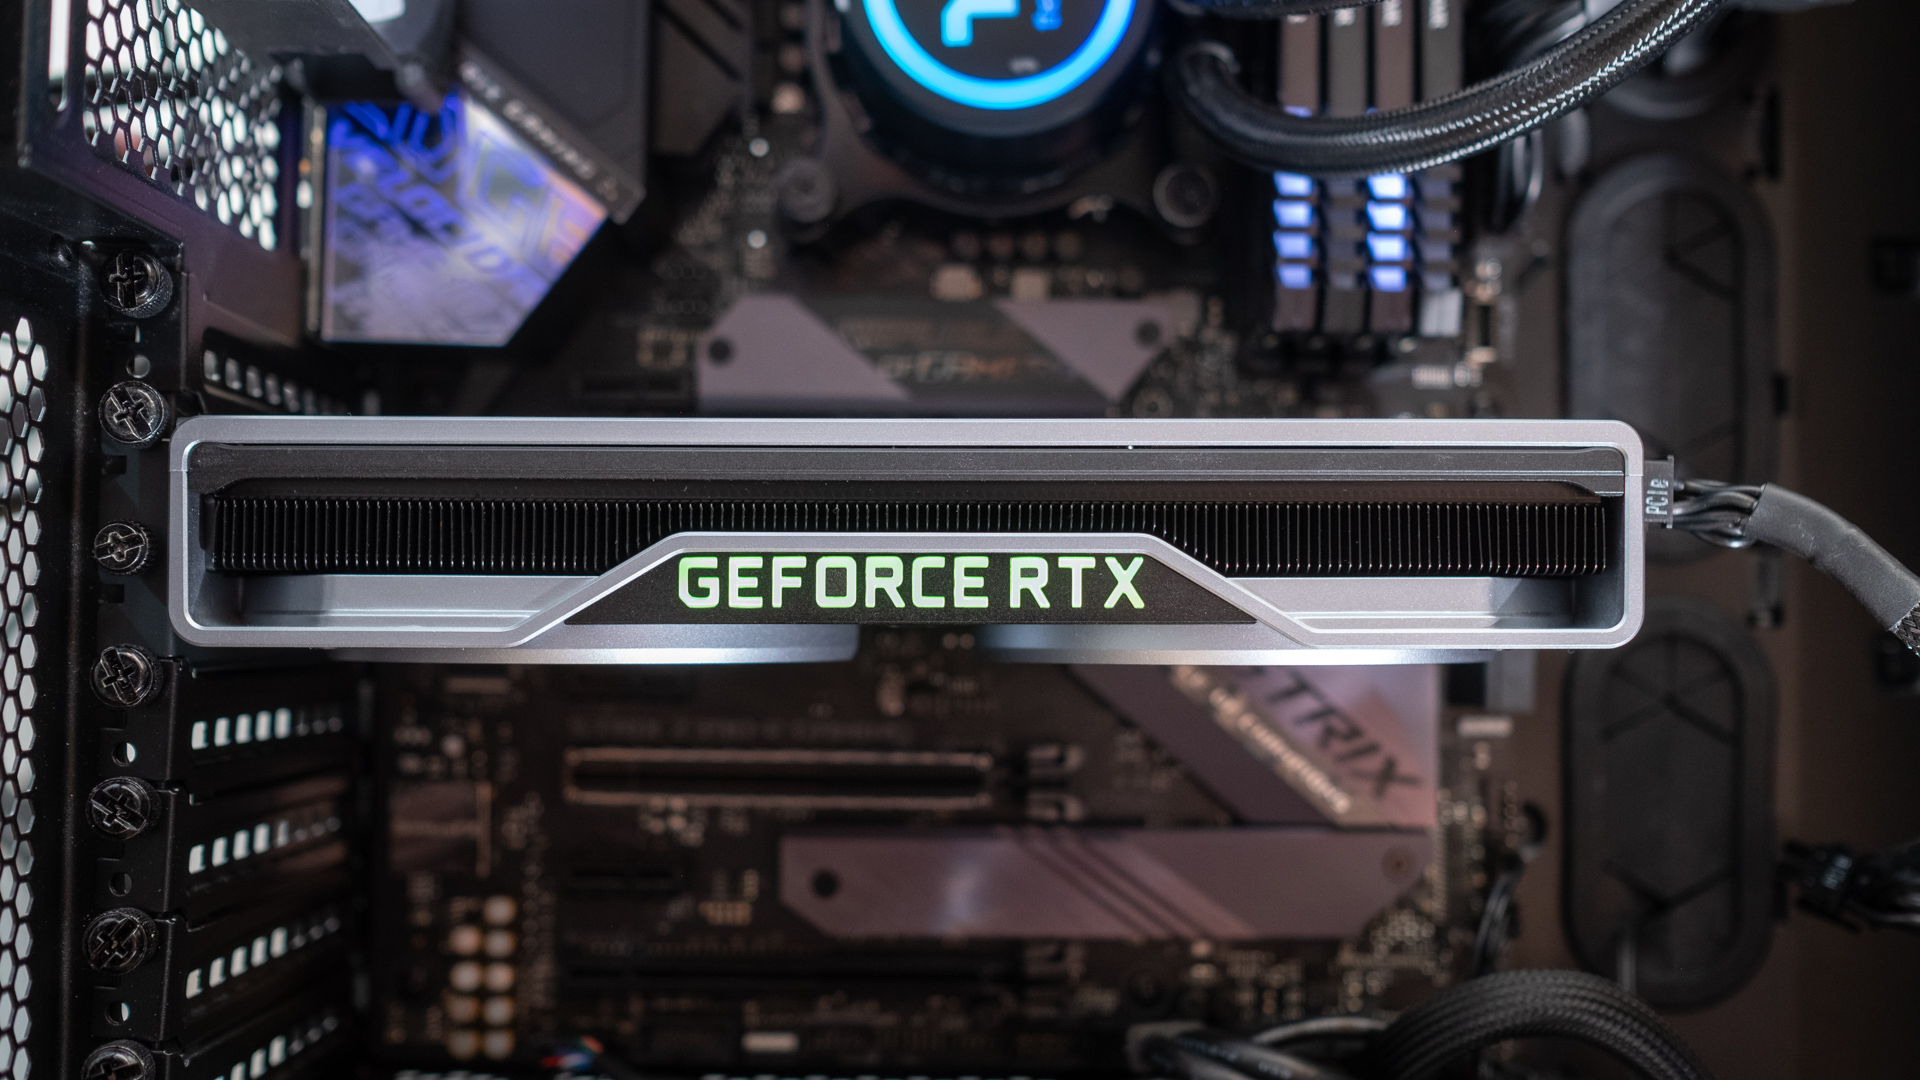 nvidia-could-sacrifice-this-popular-gpu-to-make-more-rtx-3000-cards